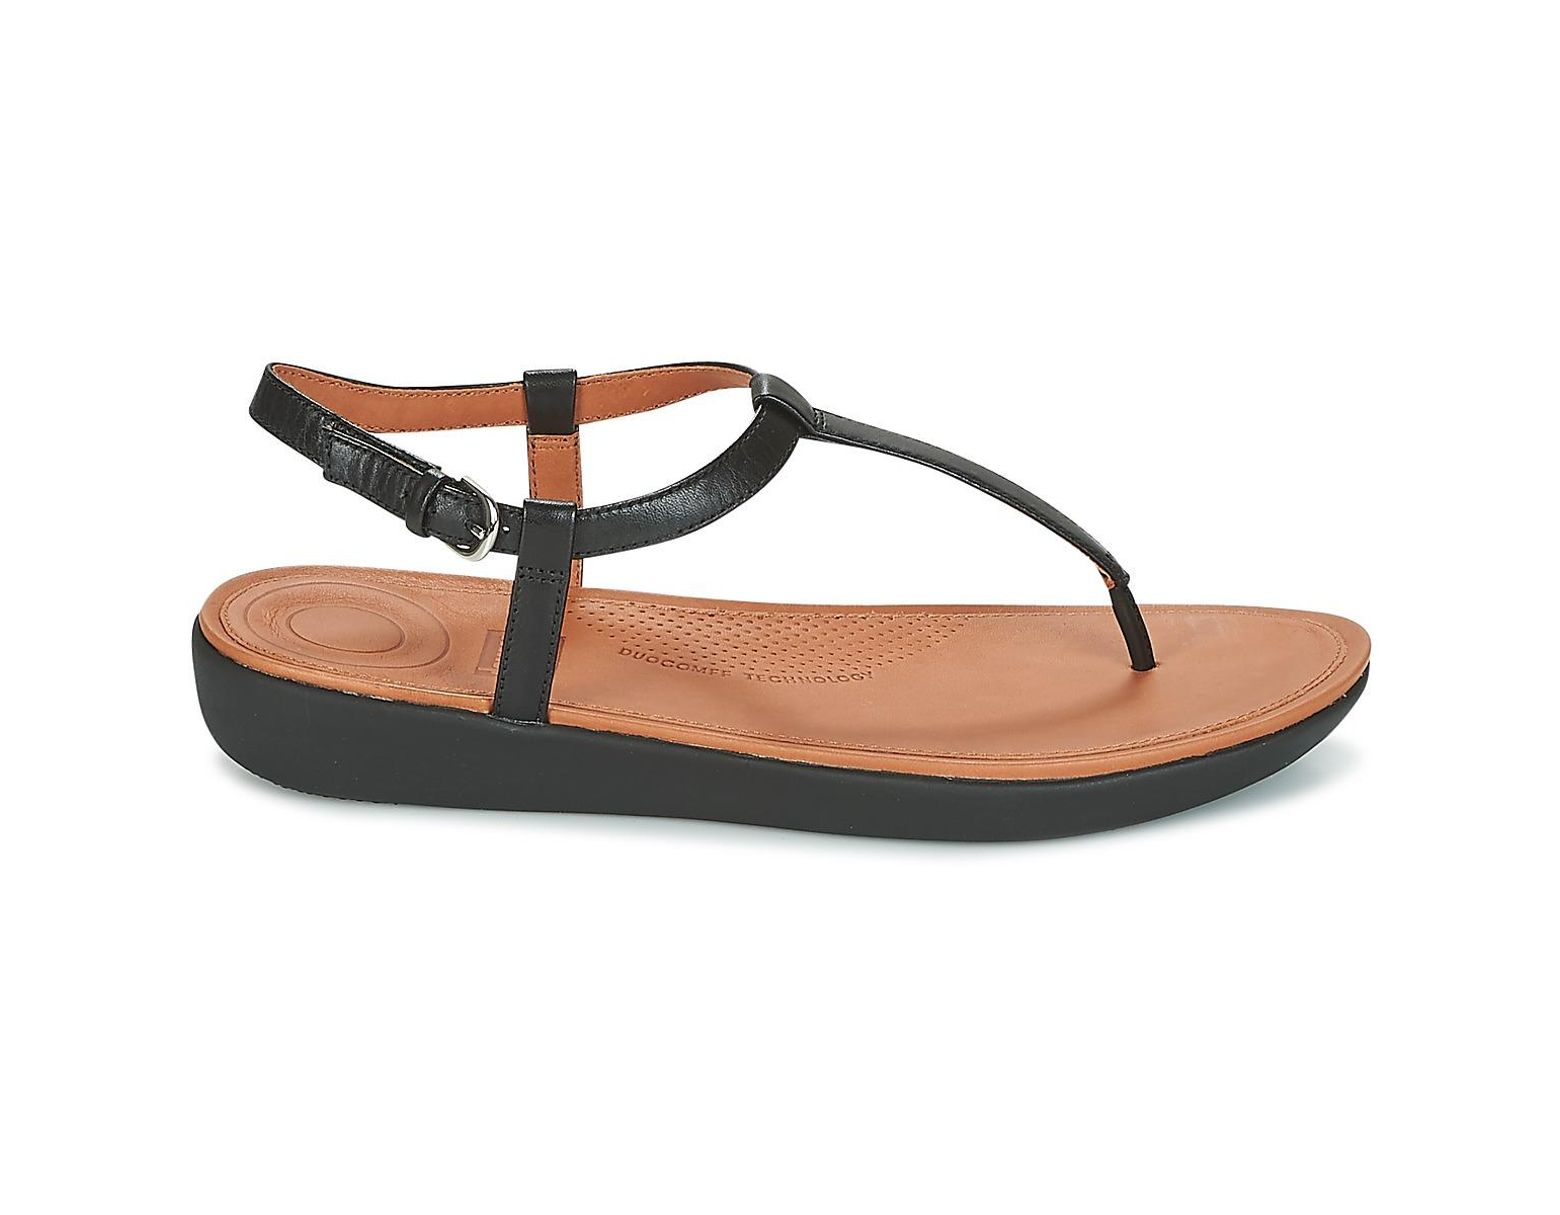 3ad152a7f9c5 Fitflop Tia Toe Thong Sandals Women s Flip Flops   Sandals (shoes) In Black  in Black - Lyst